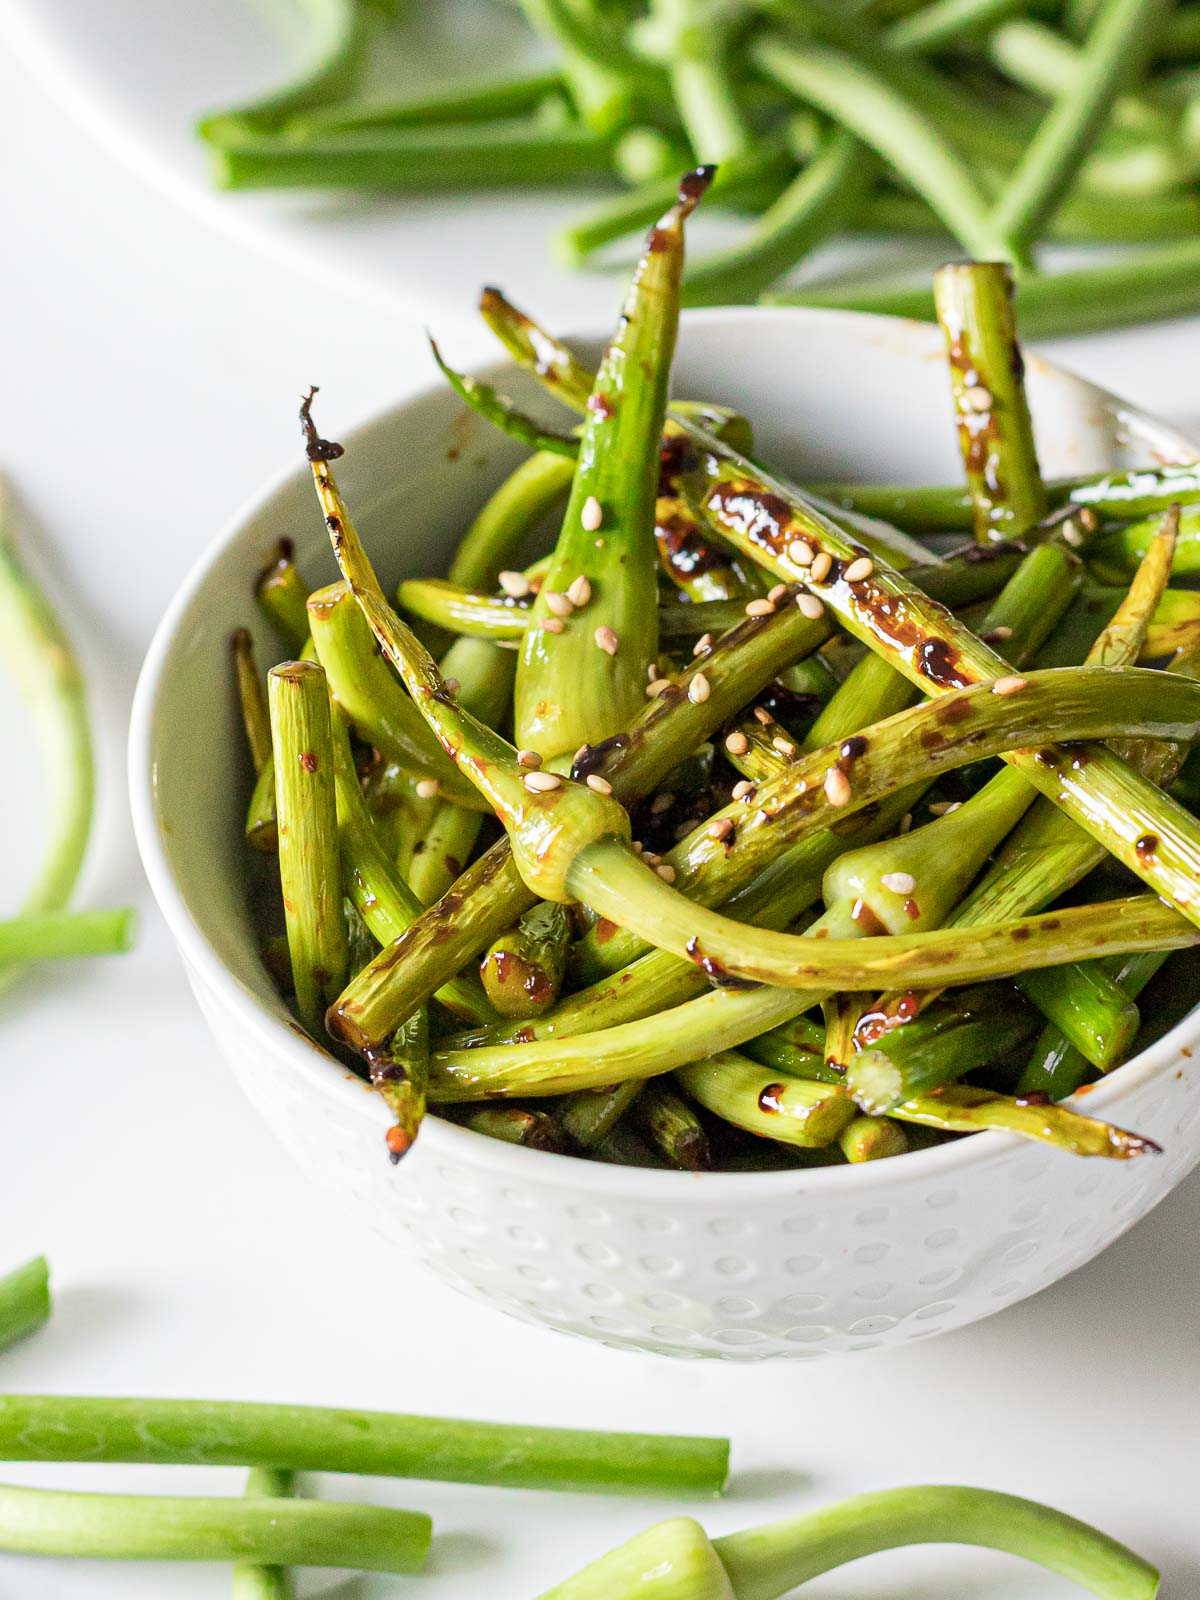 stir fried garlic scapes in a white bowl